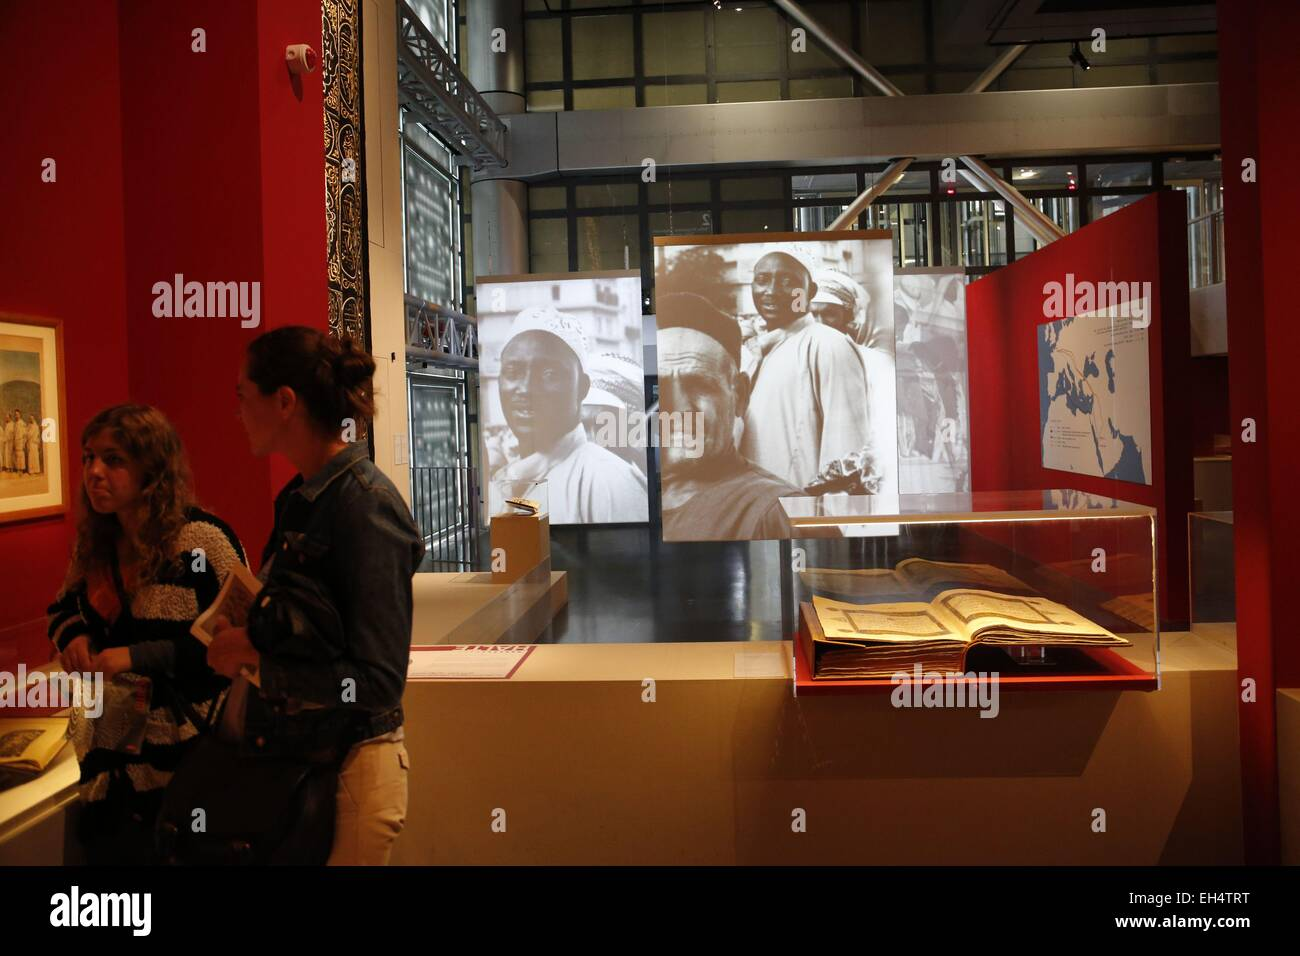 France, Paris, Institute for the arabic world, exhibition Hajj about the history of the islamic Mecca pilgrimages - Stock Image